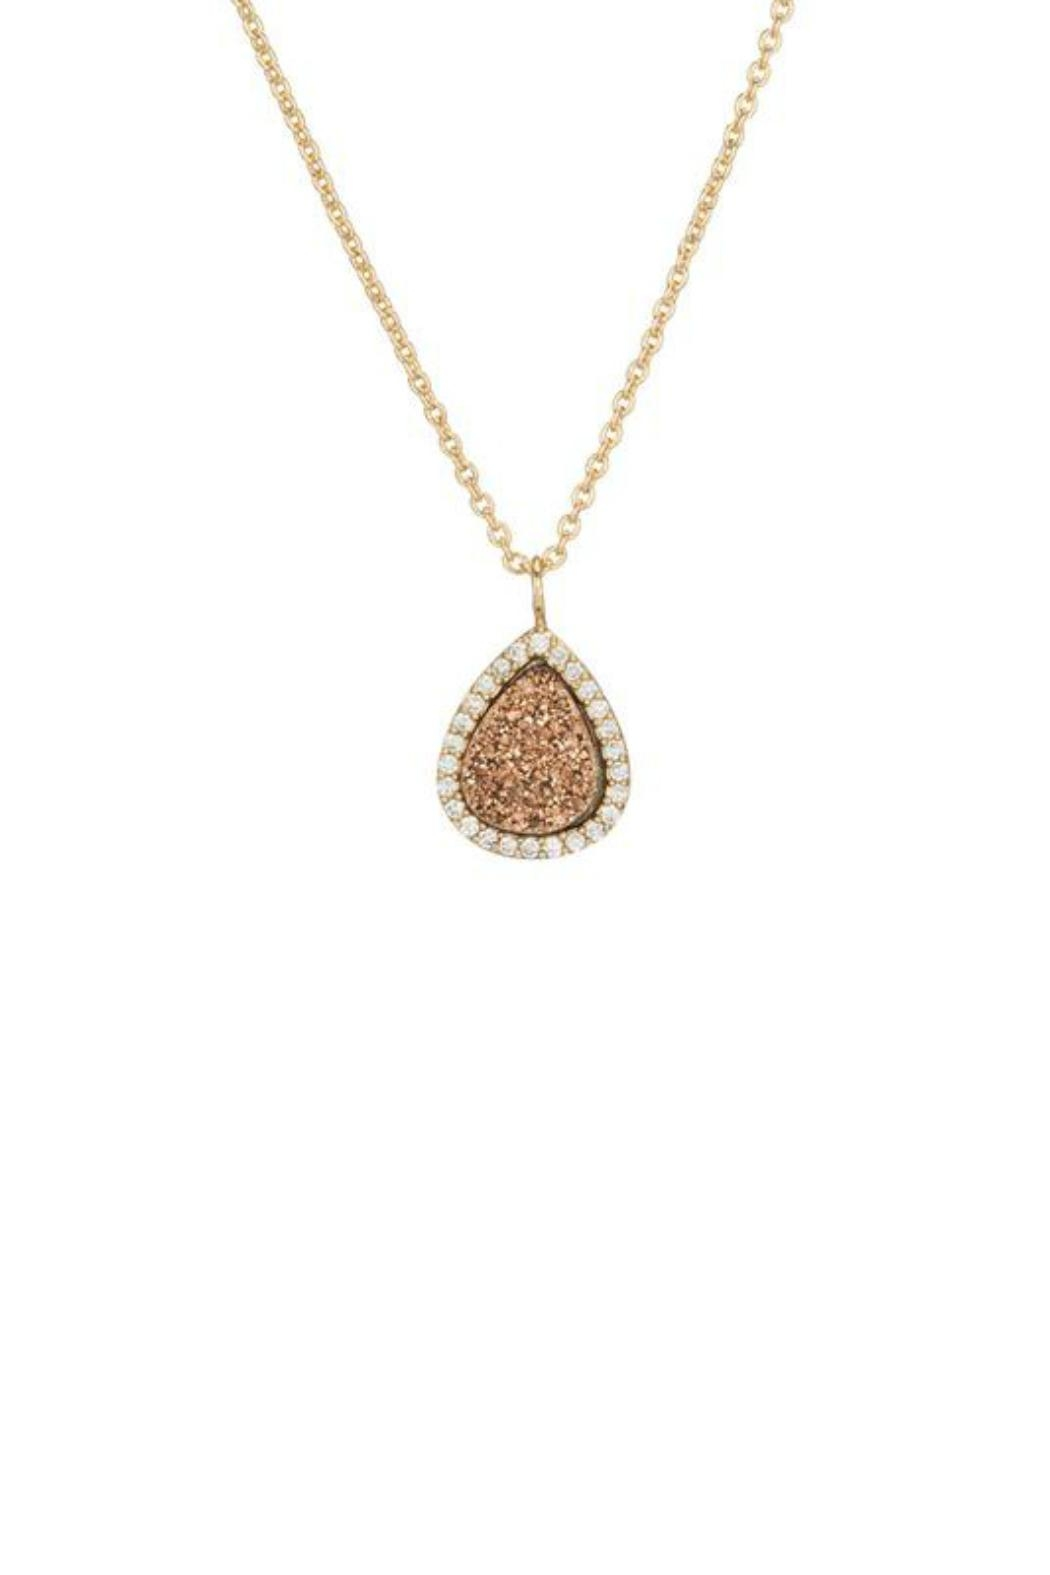 Marcia Moran Bronze Druzy Necklace - Main Image